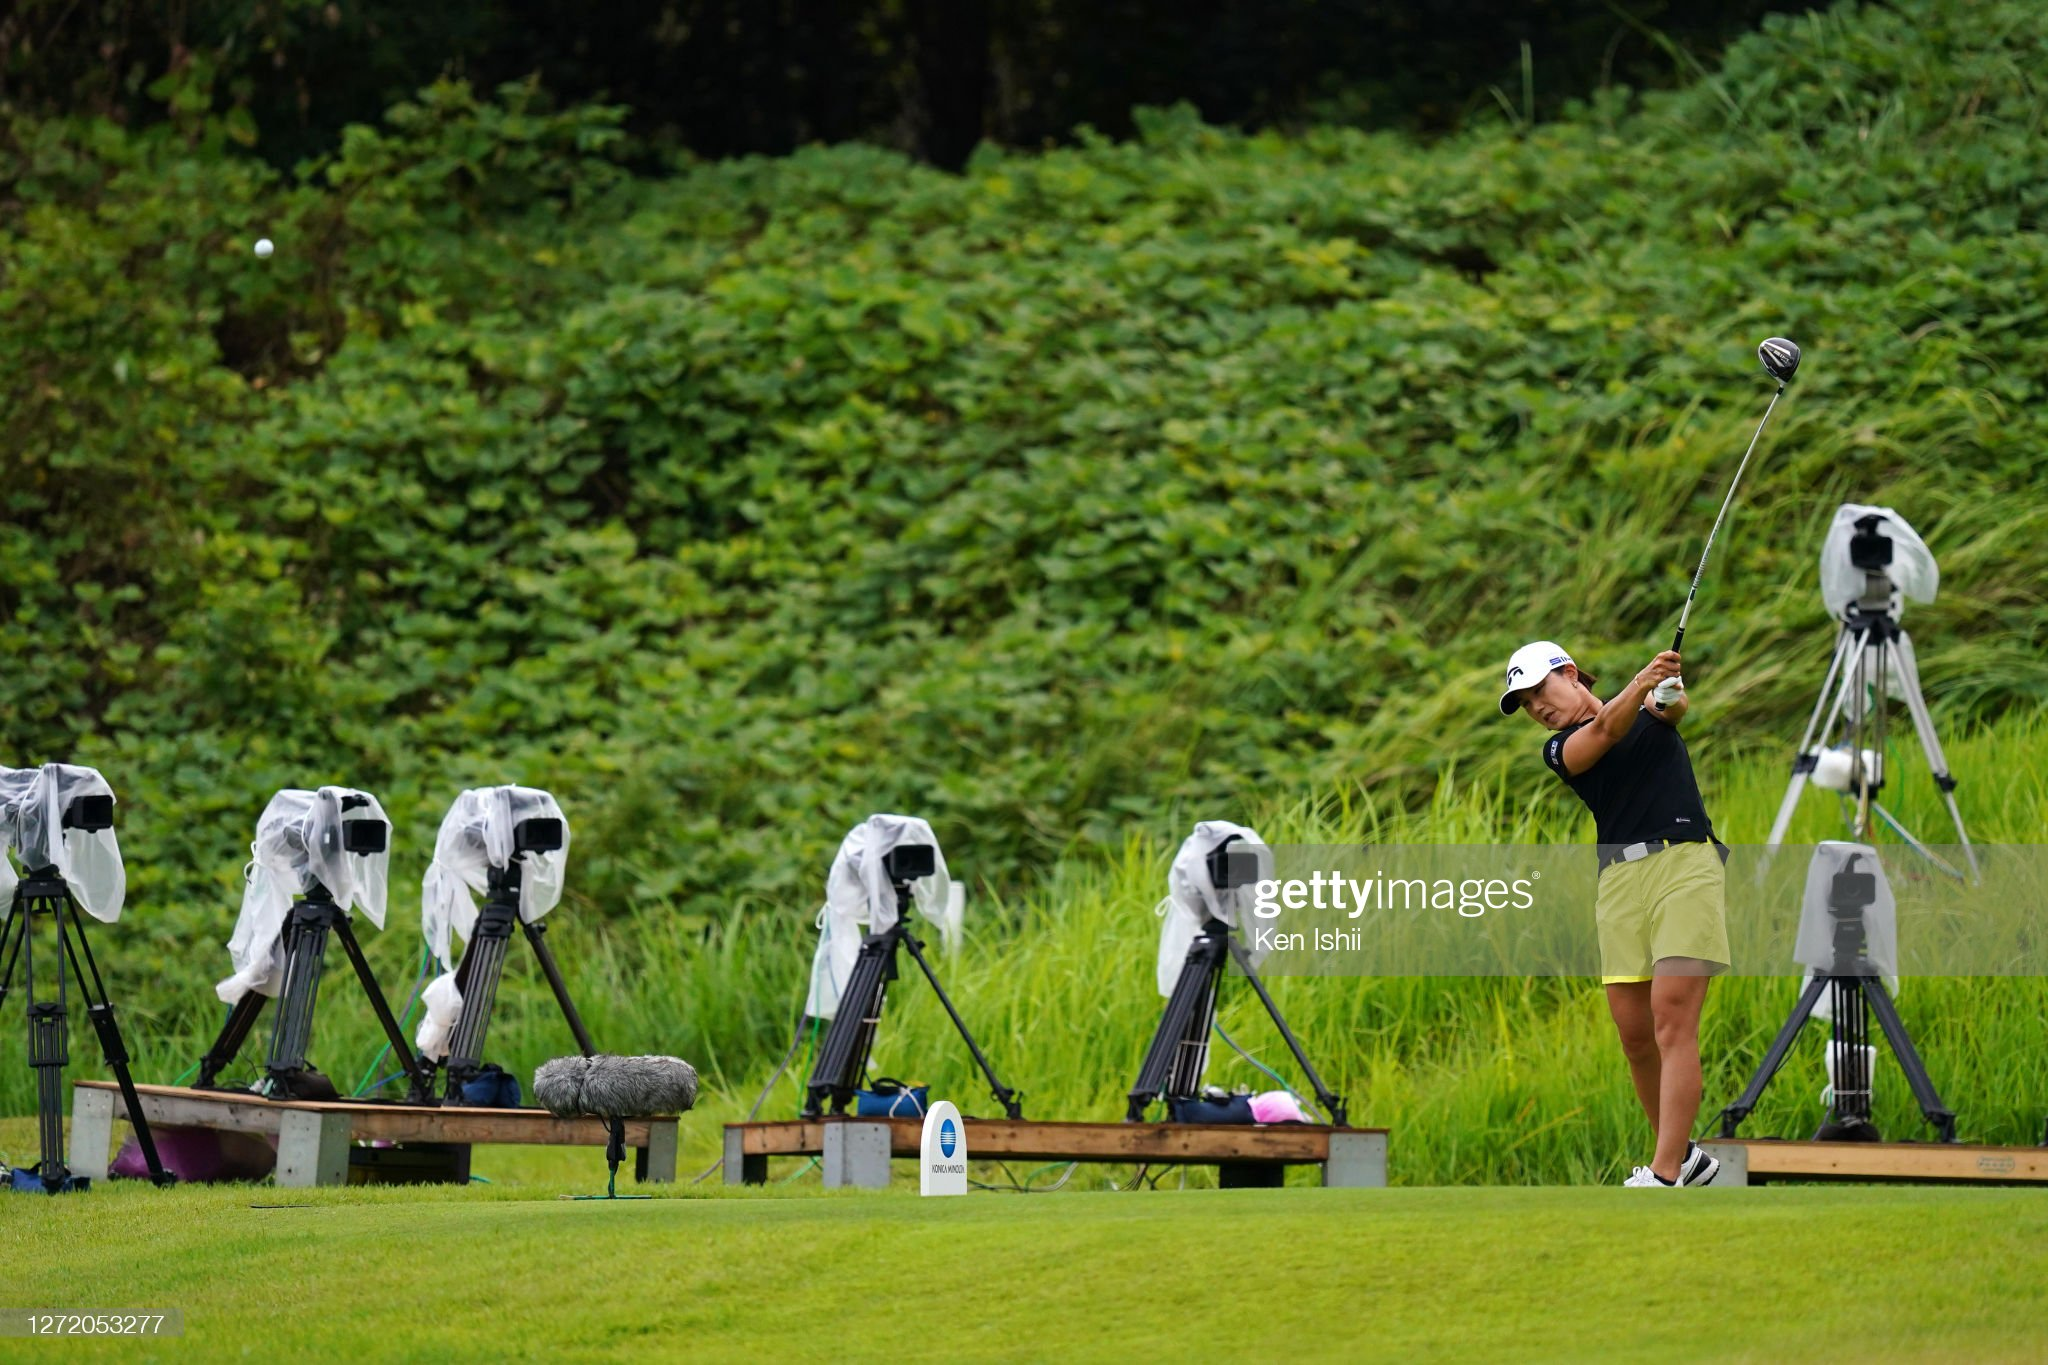 https://media.gettyimages.com/photos/mijeong-jeon-of-south-korea-hits-her-tee-shot-on-the-15th-hole-during-picture-id1272053277?s=2048x2048